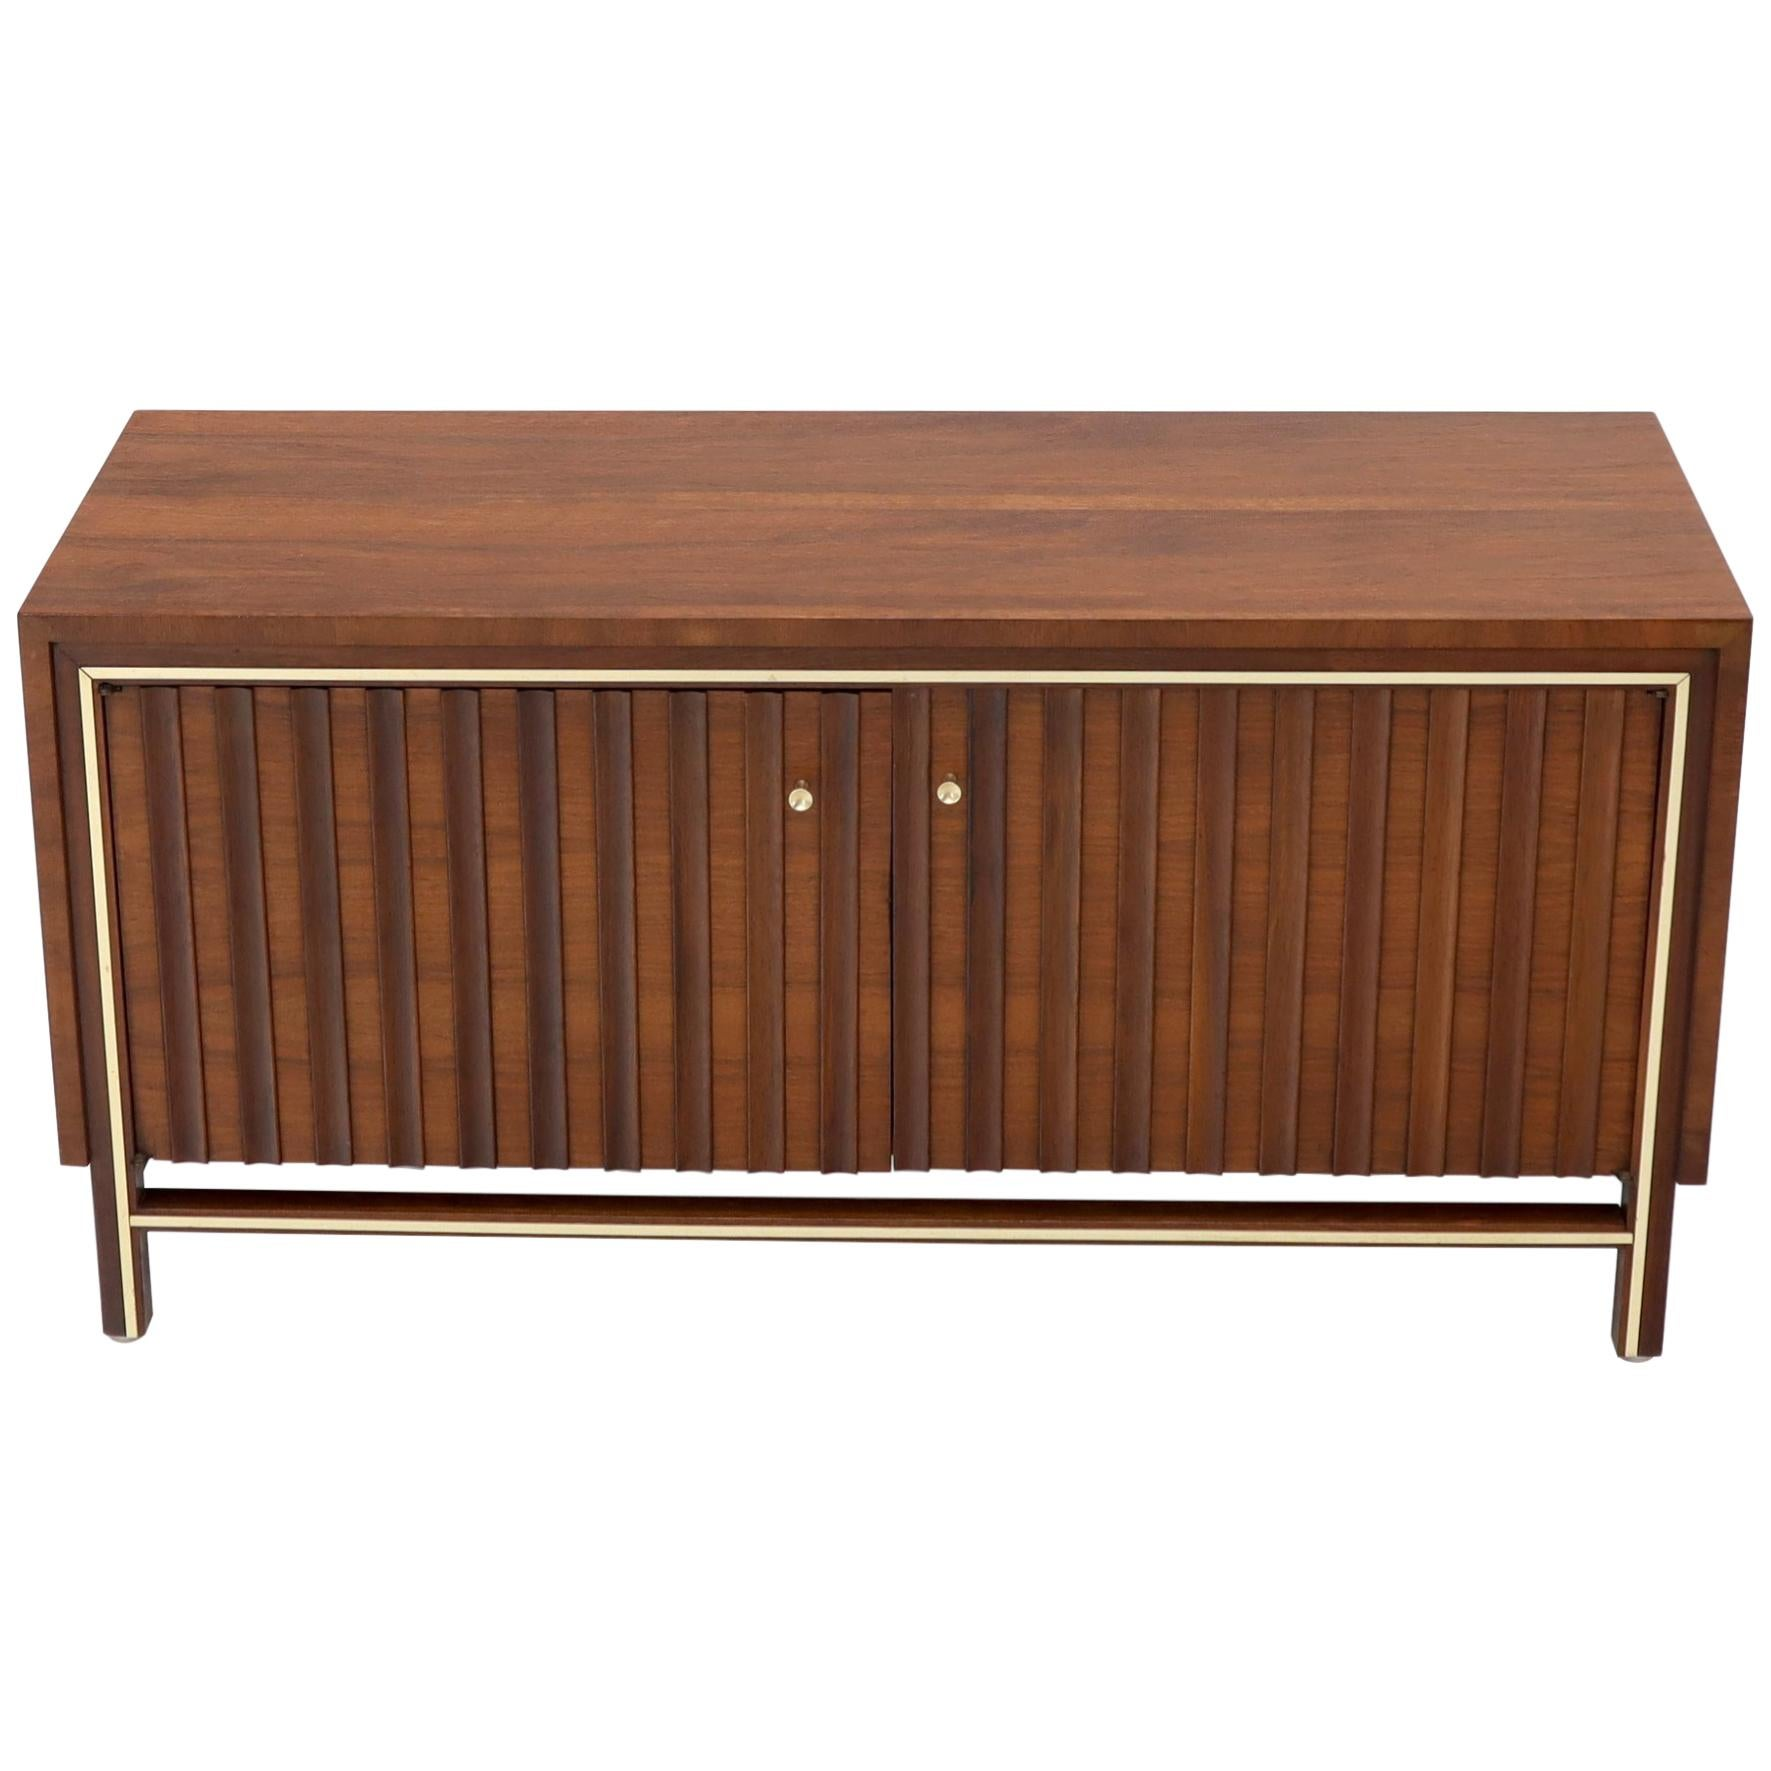 Two Door Sculpted Front Small Walnut Credenza Dresser with Brass Accents